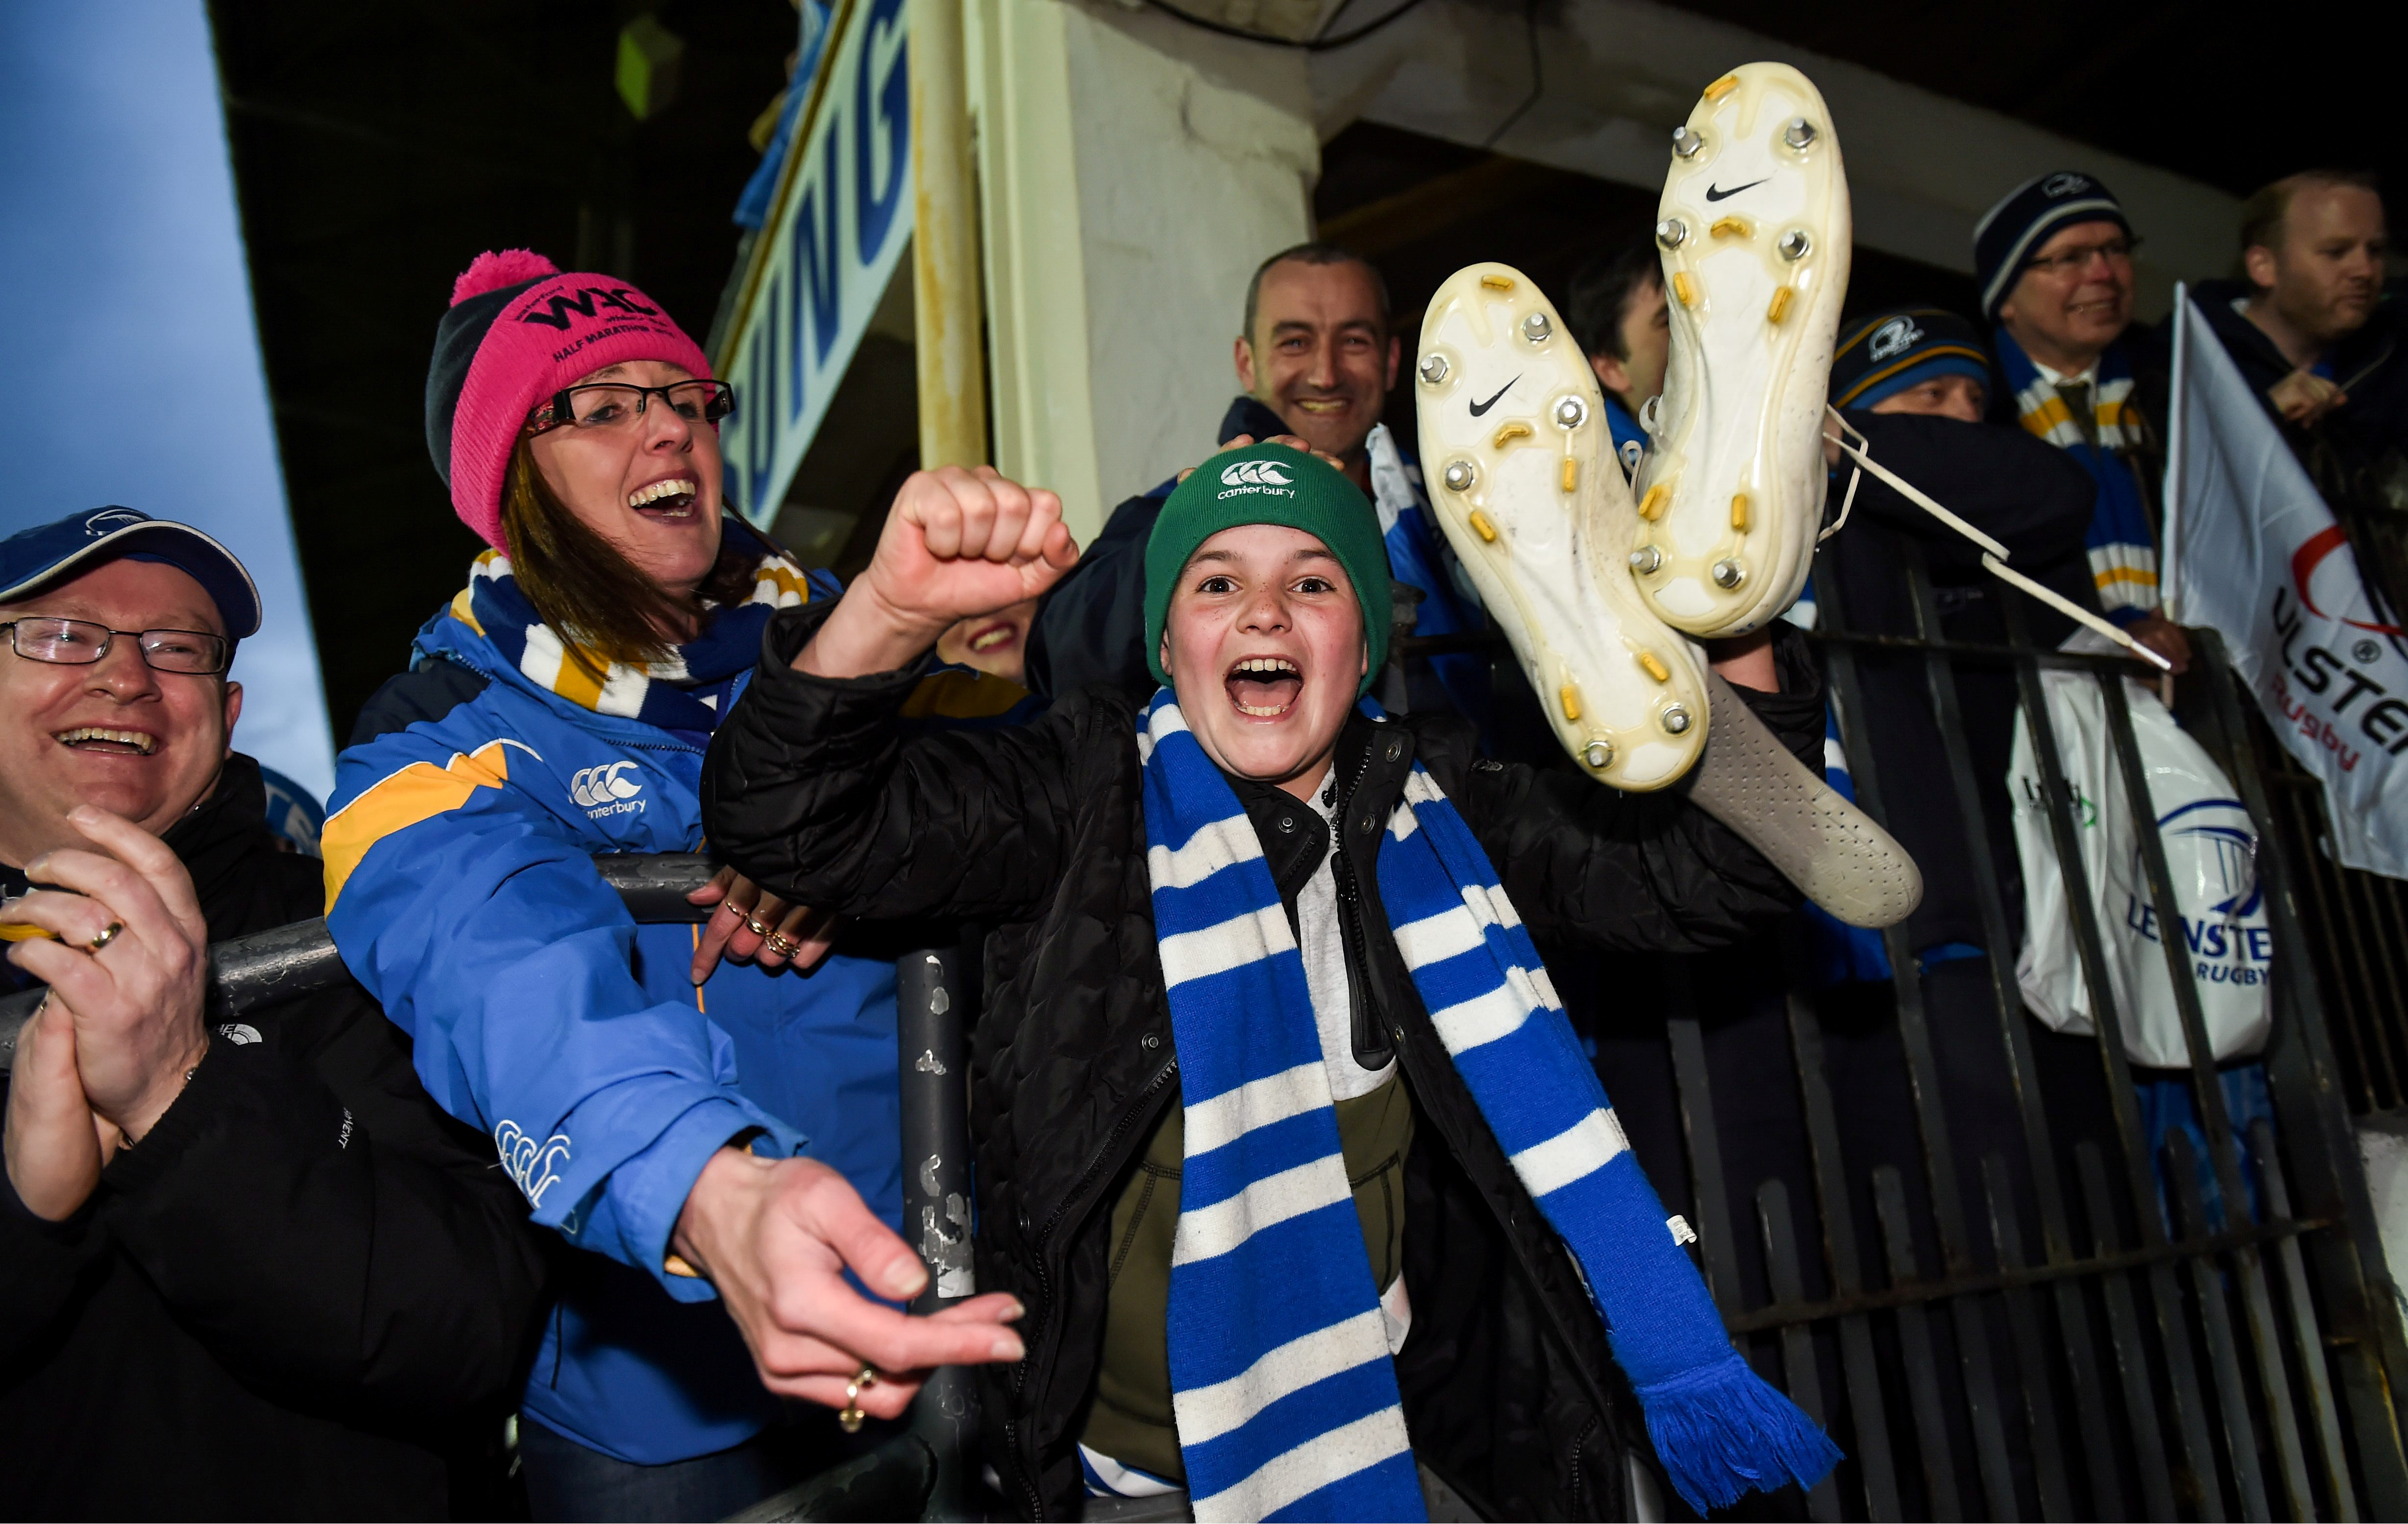 Leinster supporter